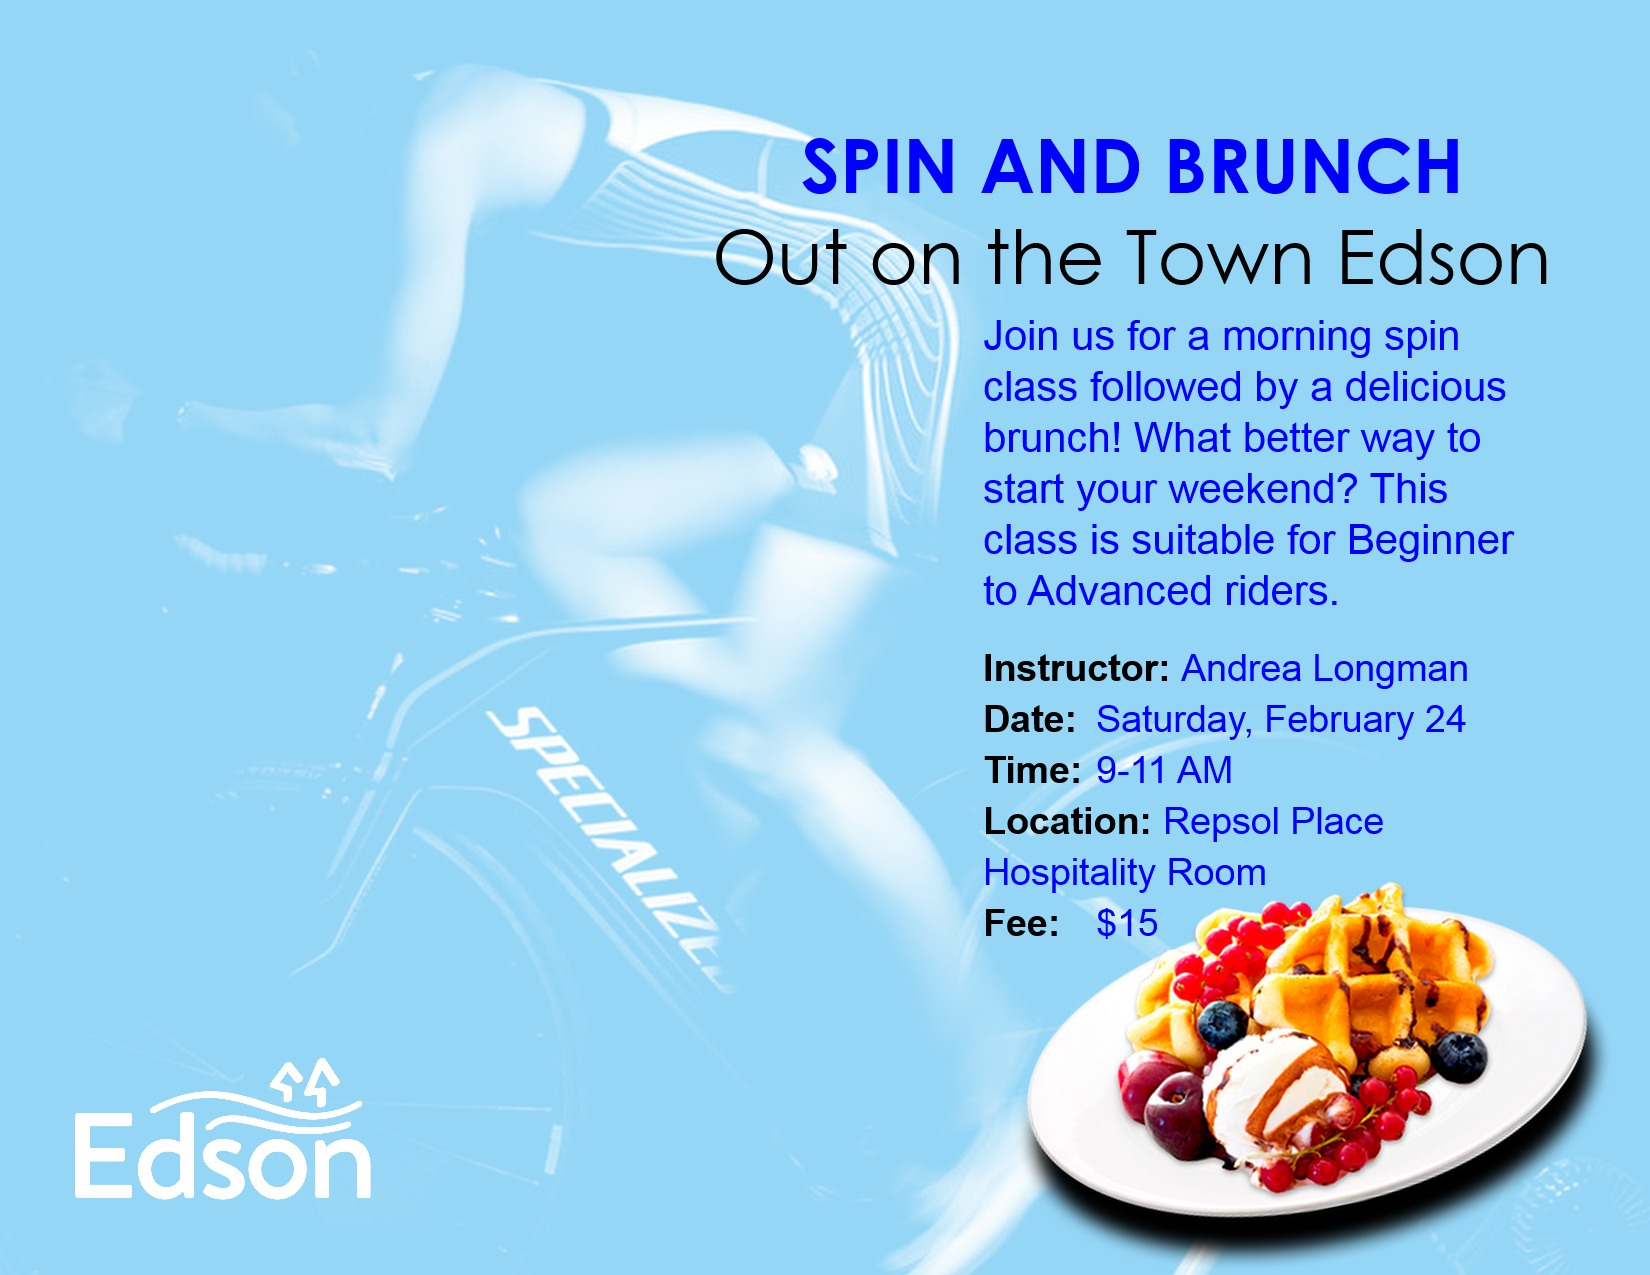 Out on the Town Edson (OTE) Spin and Brunch @ Repsol Place Hospitality Room